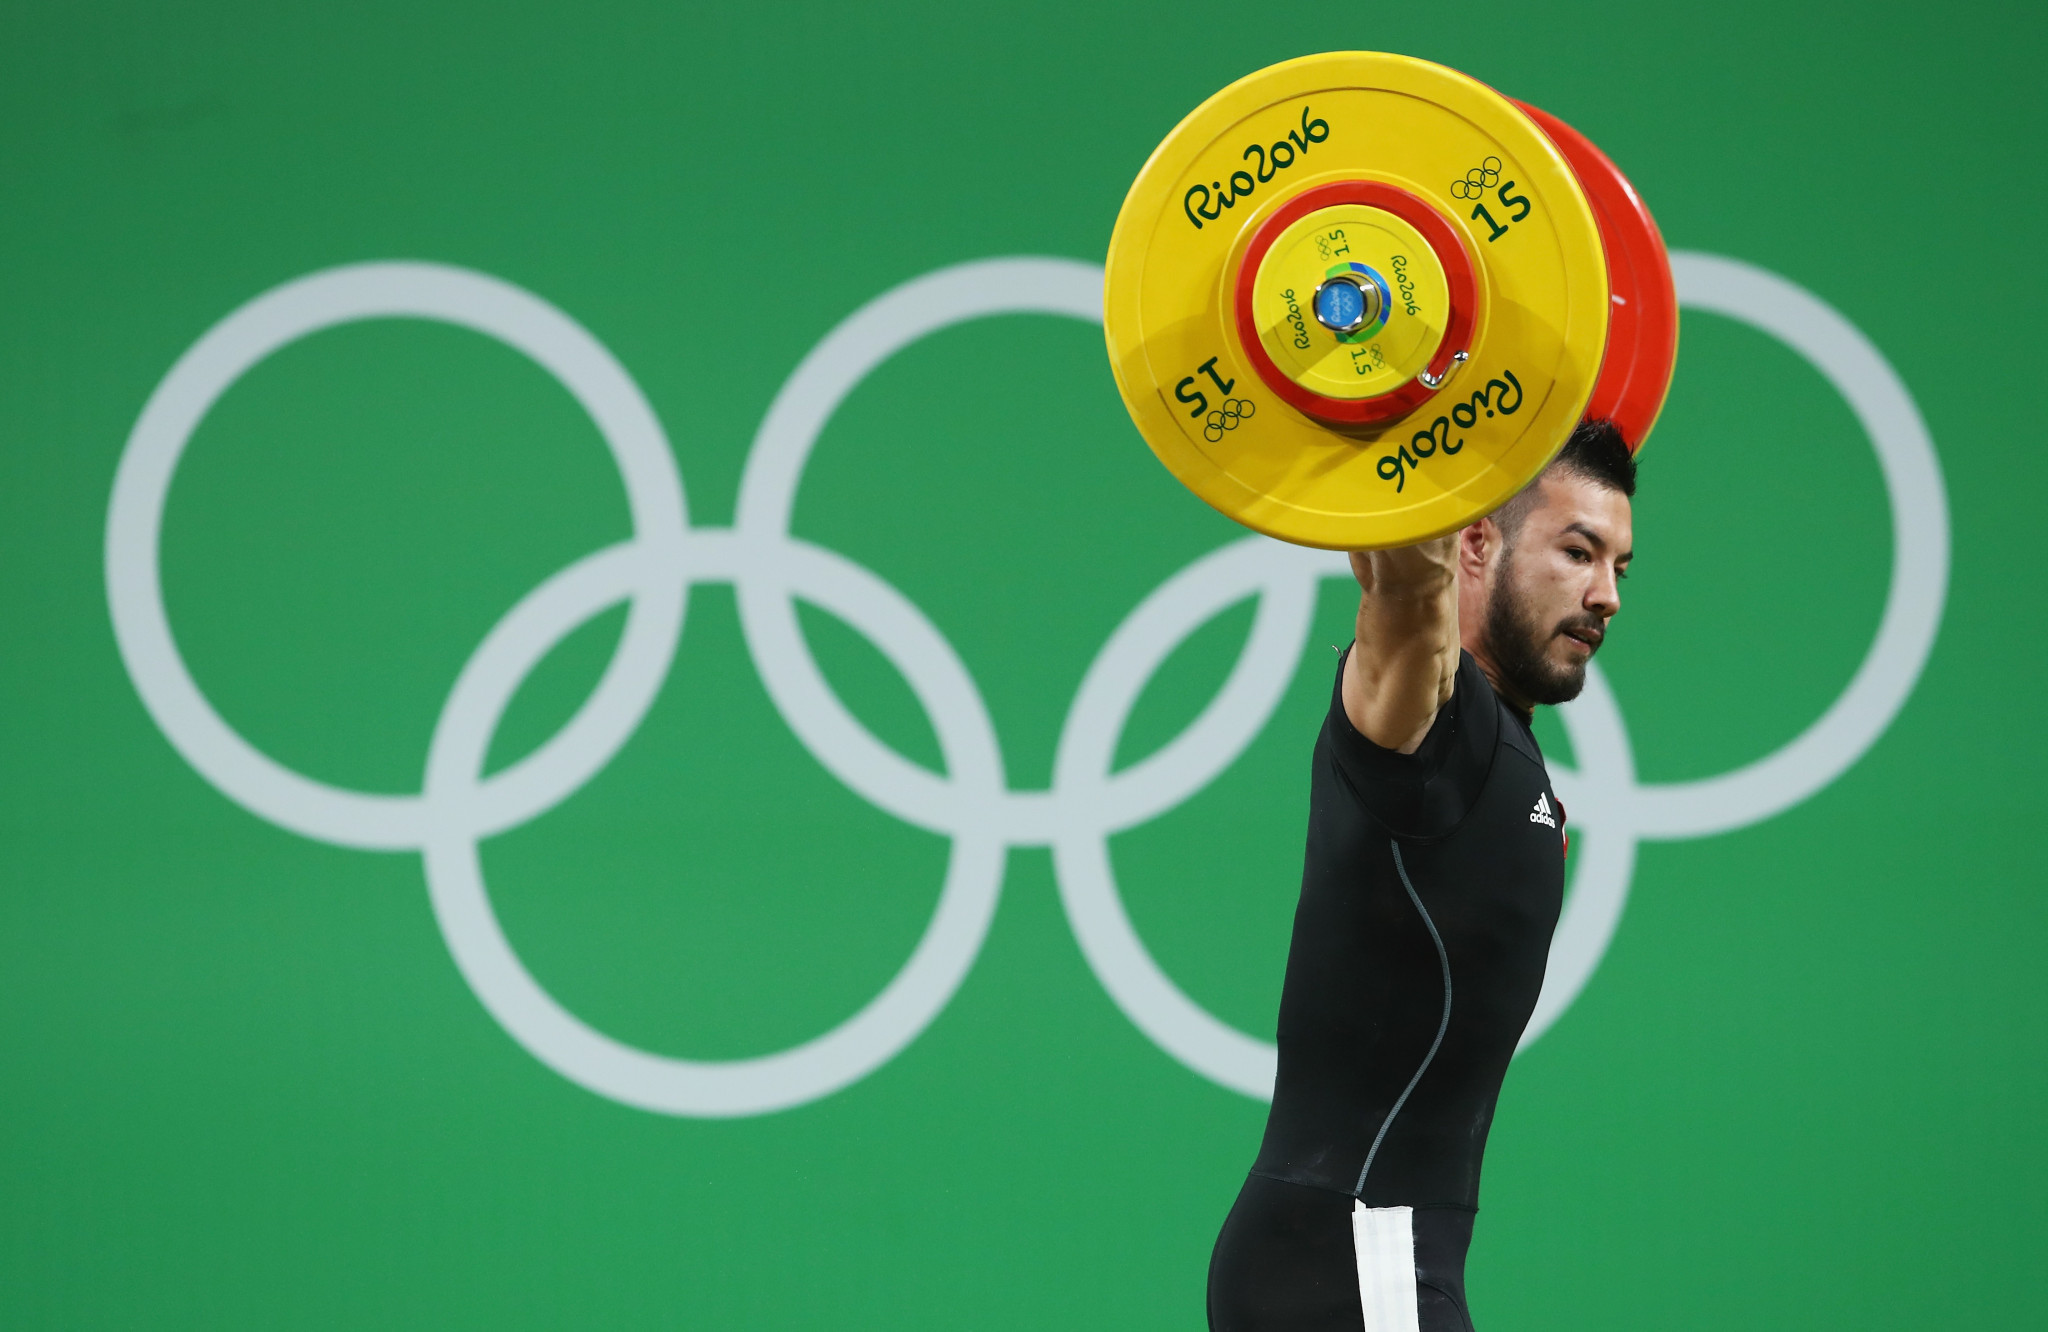 Belarus's Laptseu grabs EWF European Weightlifting Championships gold